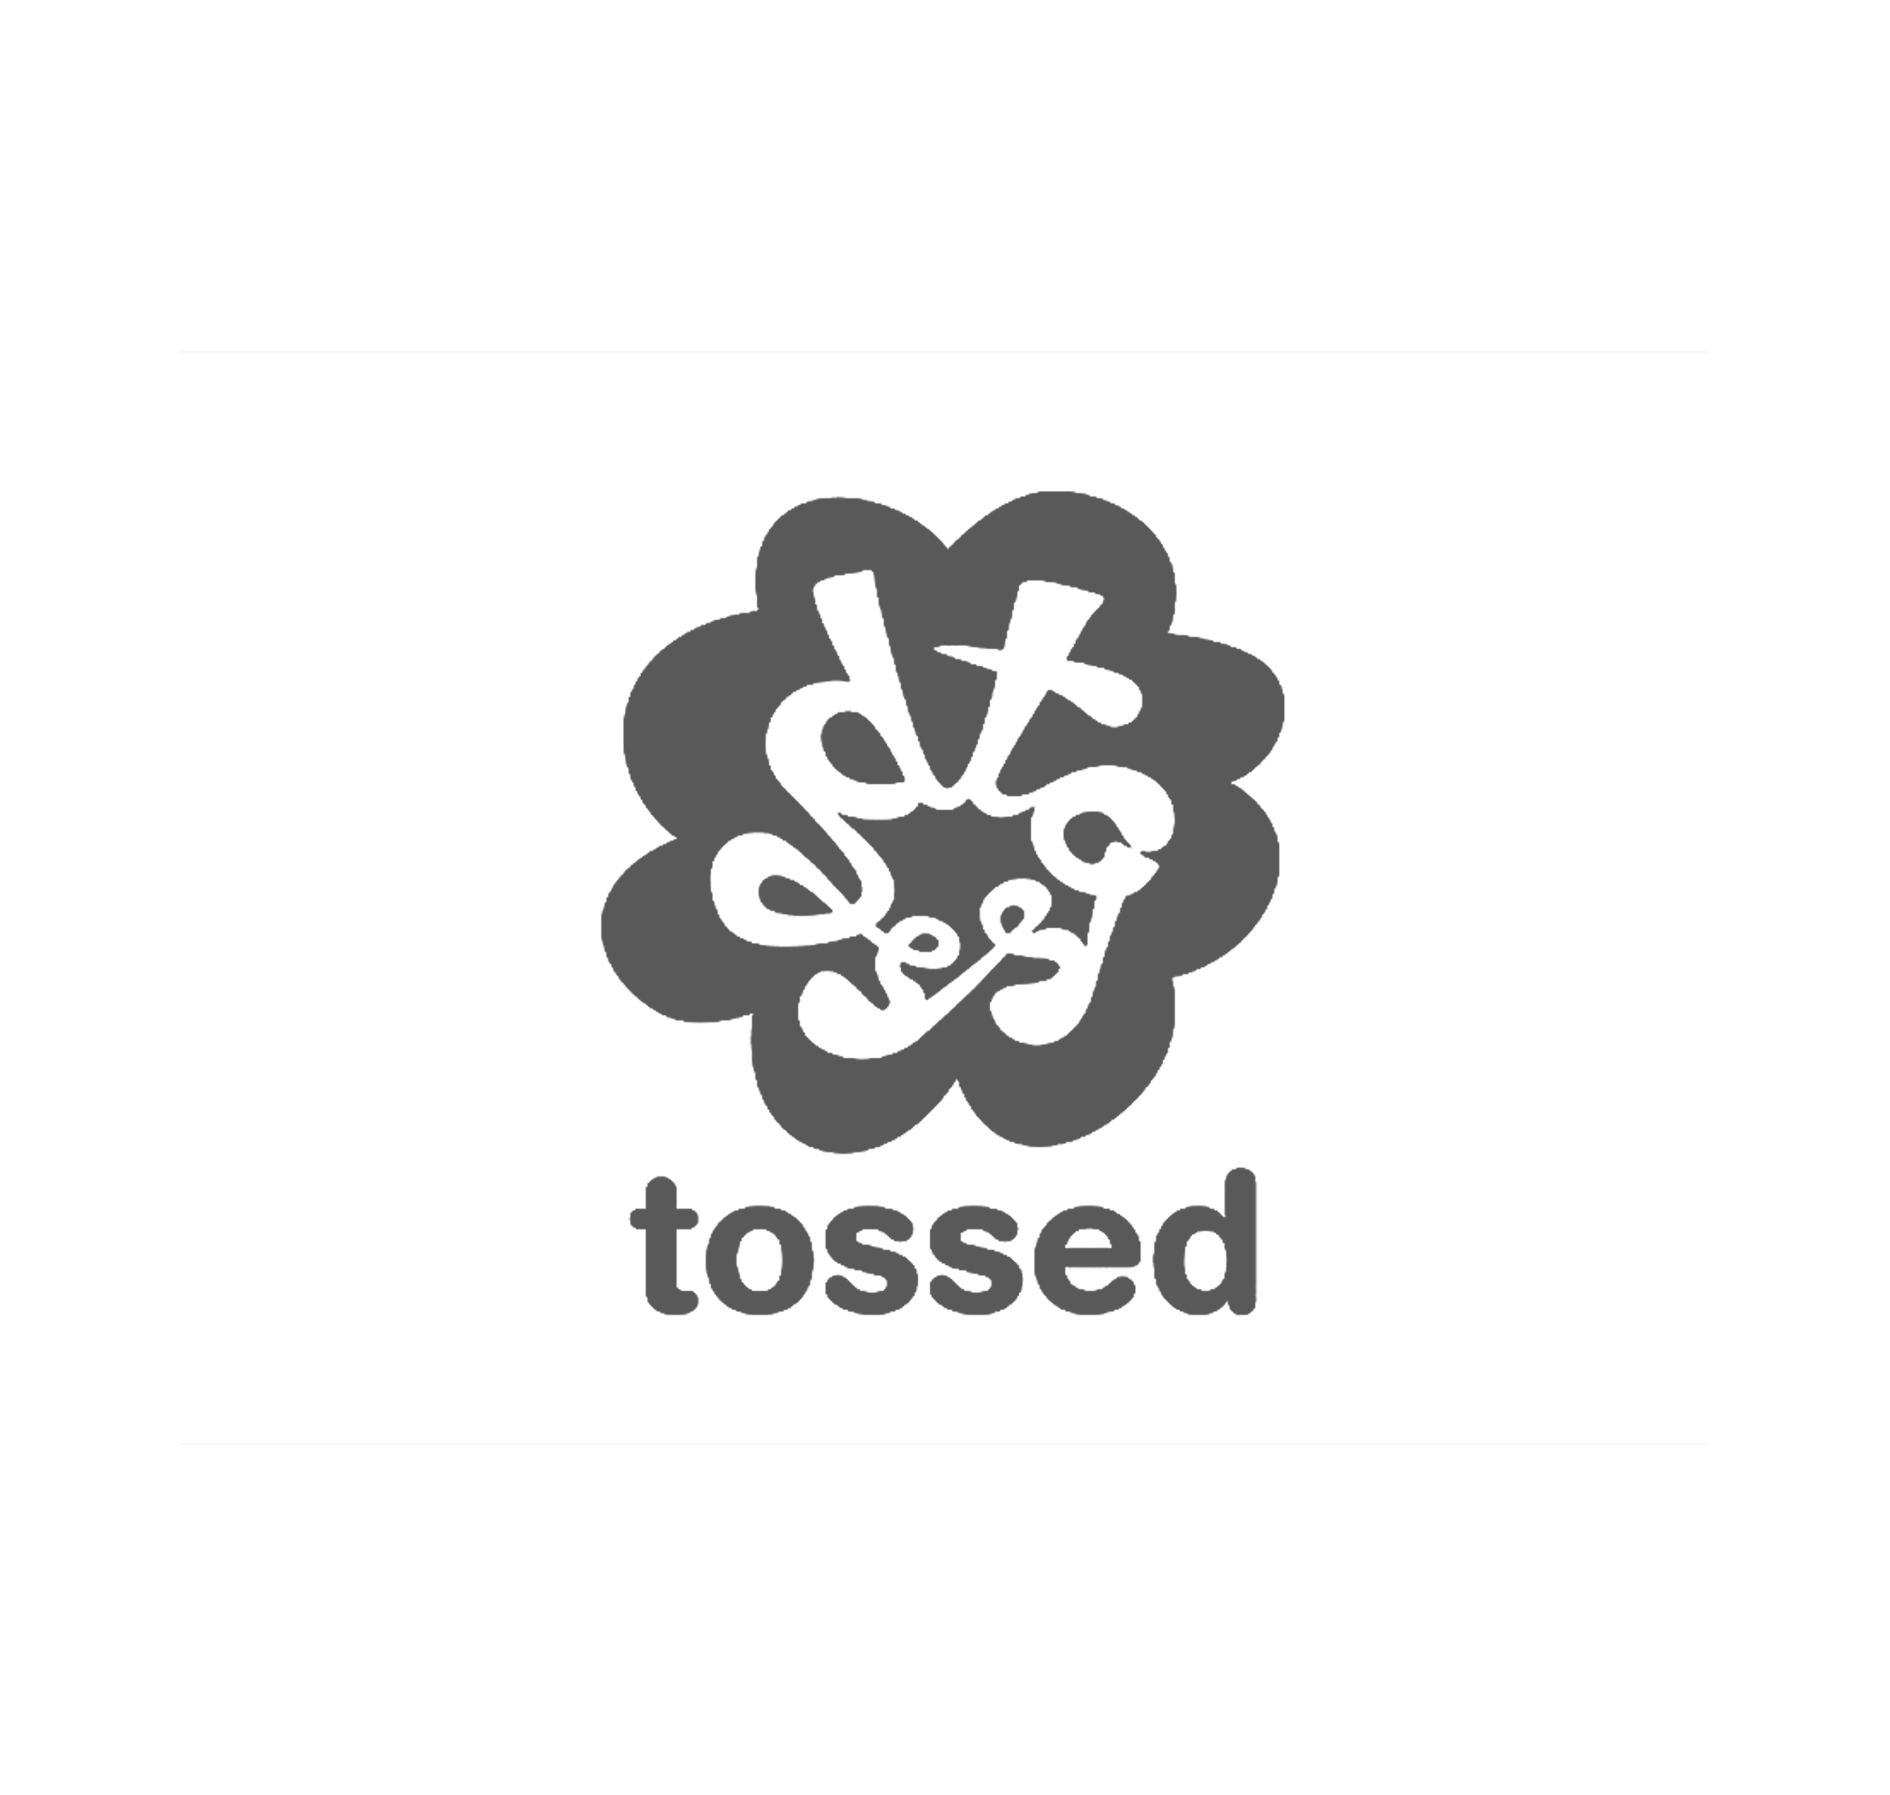 tossed.png